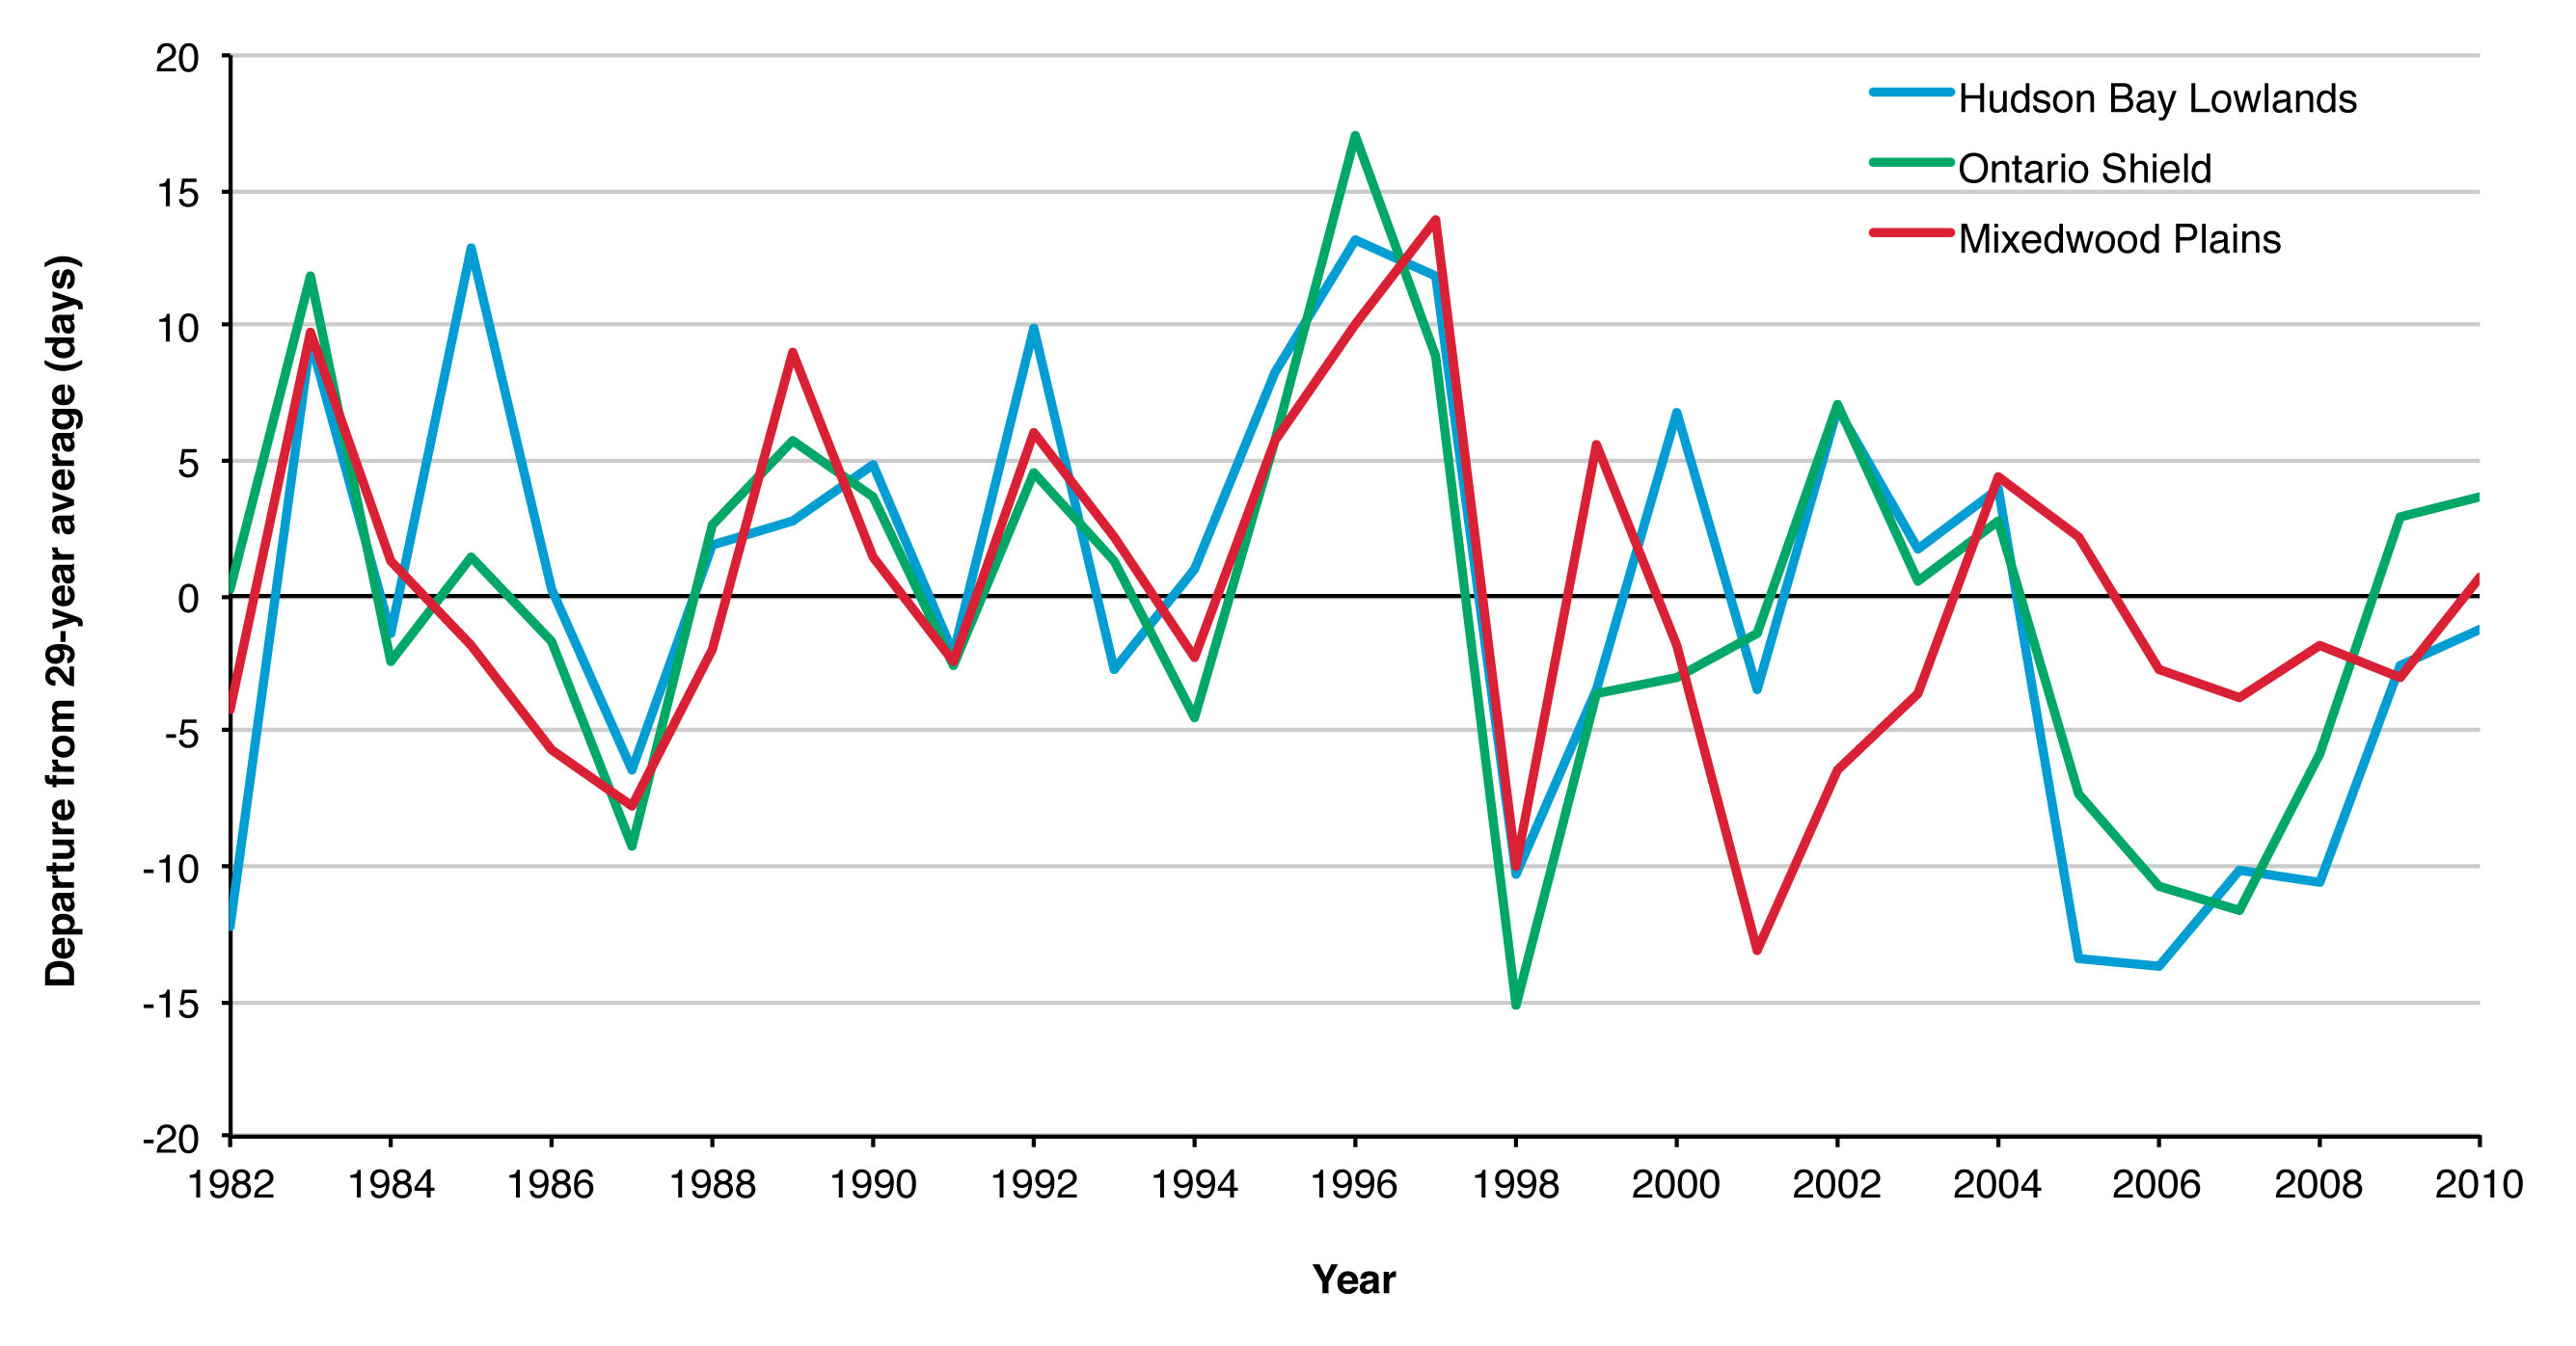 Figure 1. Change in the start of the growing season over the period 1982-2010 for each ecozone based on NDVI data.